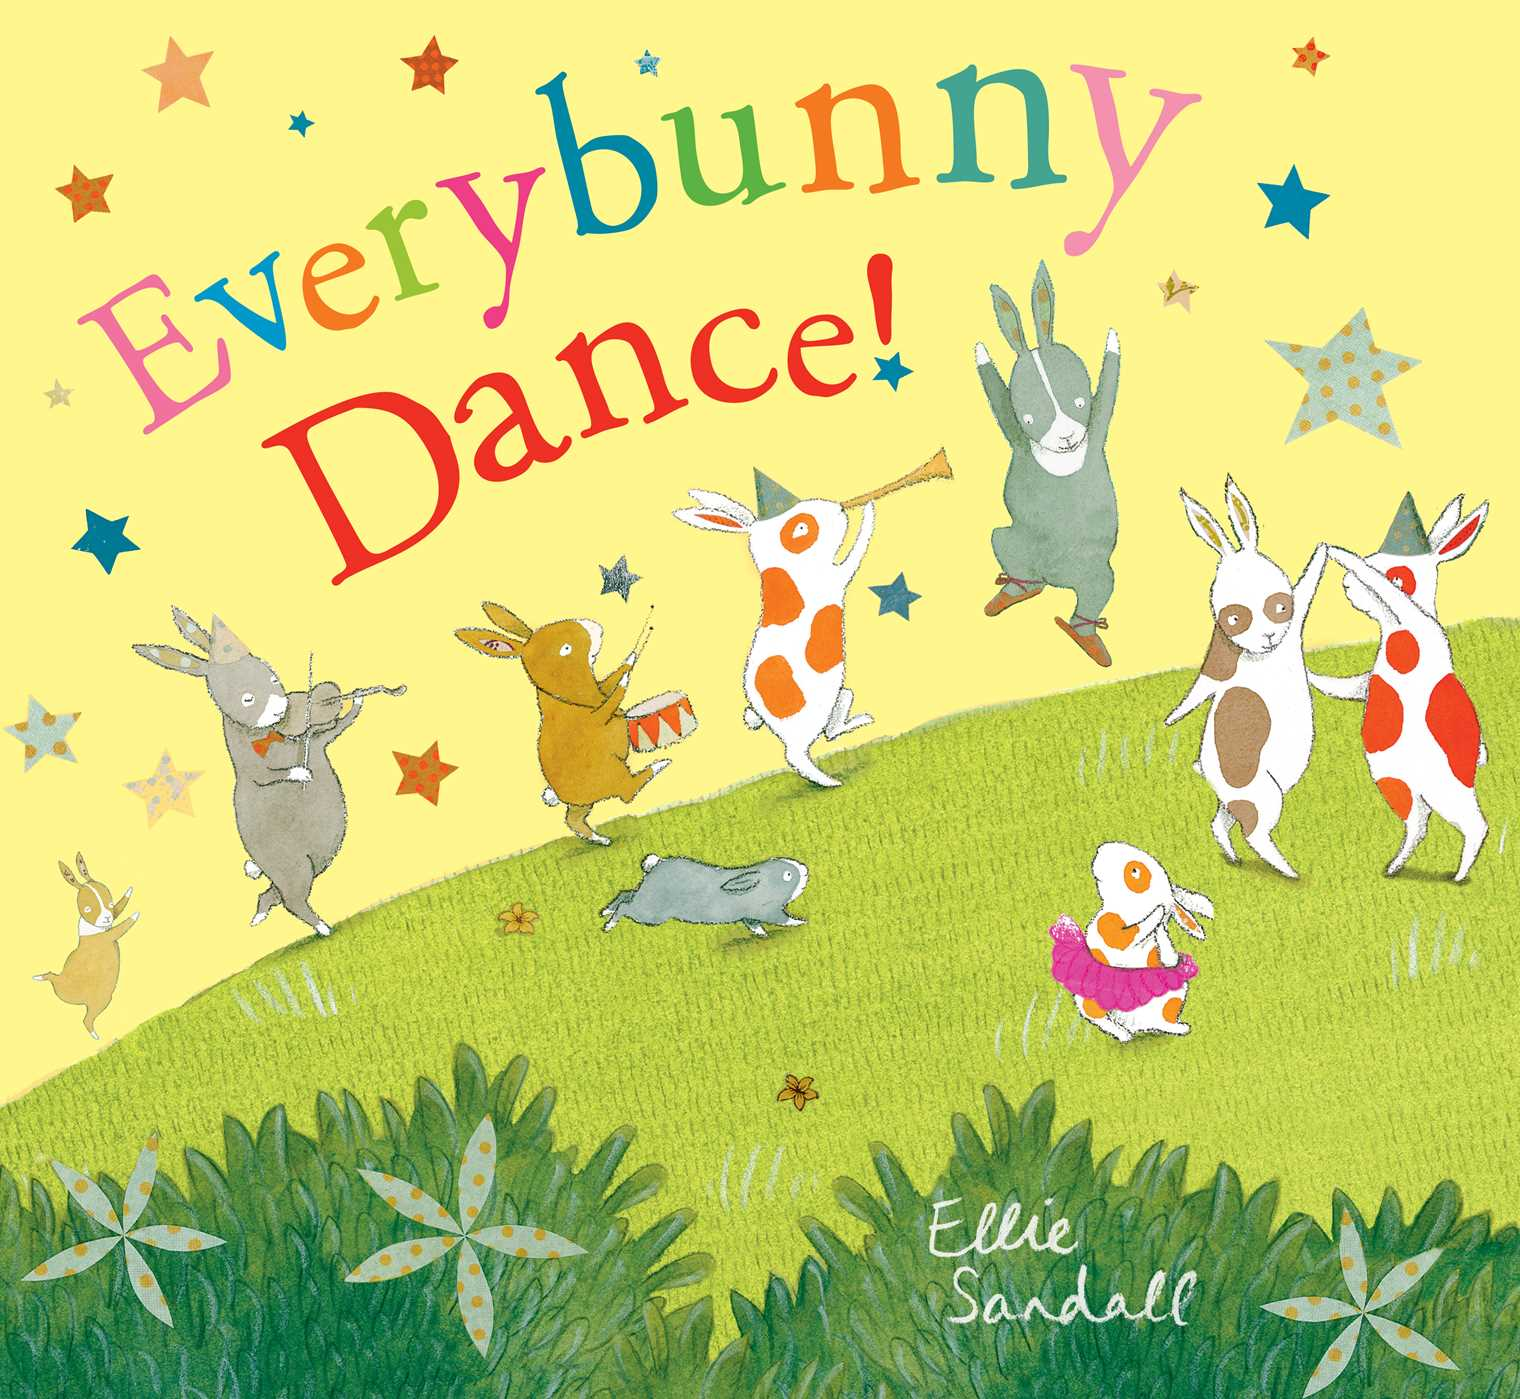 Image result for everybunny dance